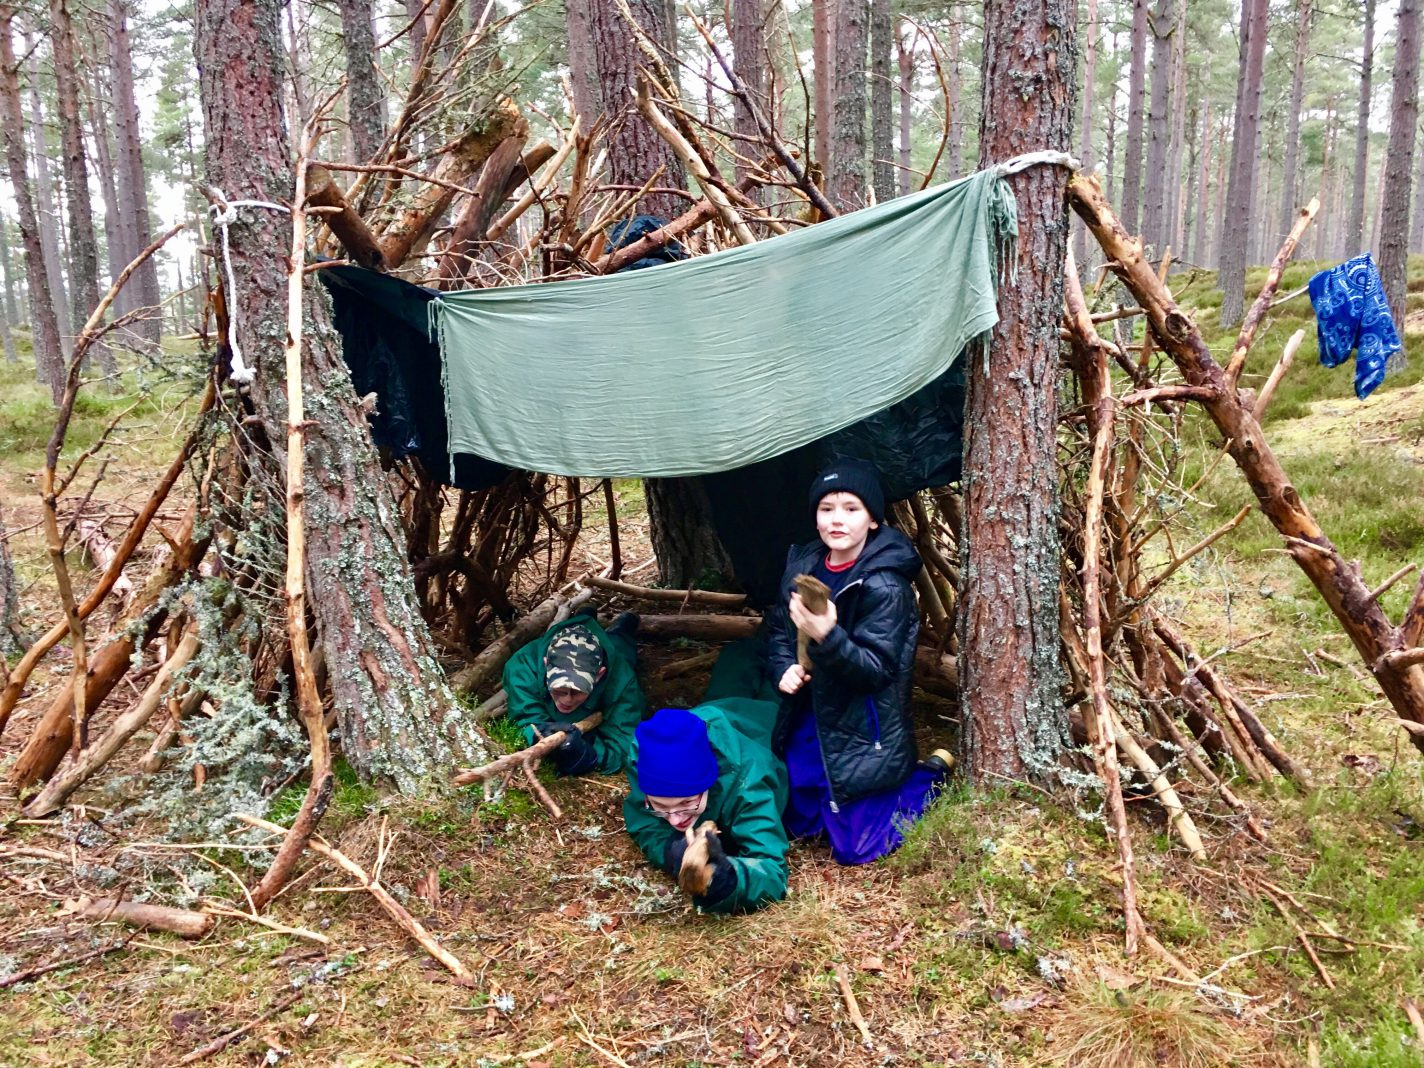 Young people with disabilities building a den in the woods